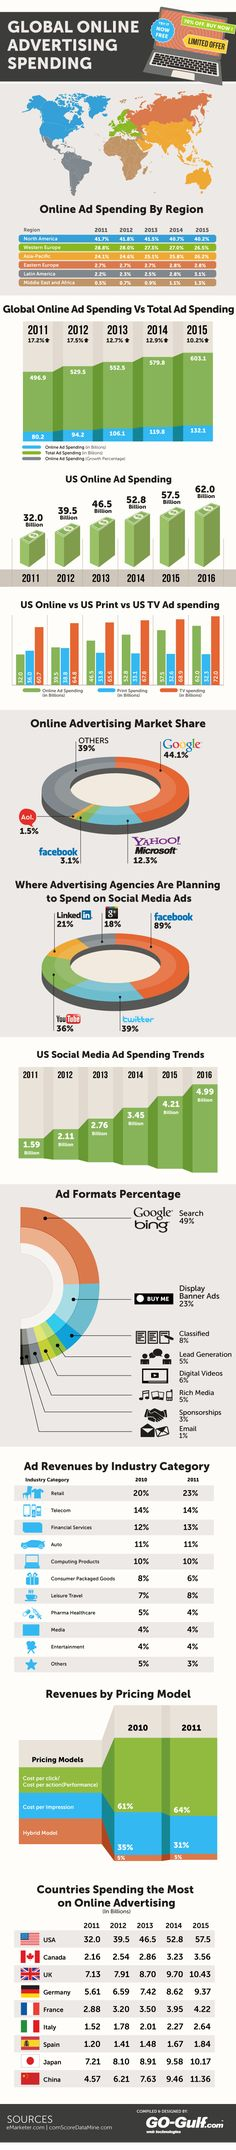 Global Online Advertising Spending Statistics [Infographic]